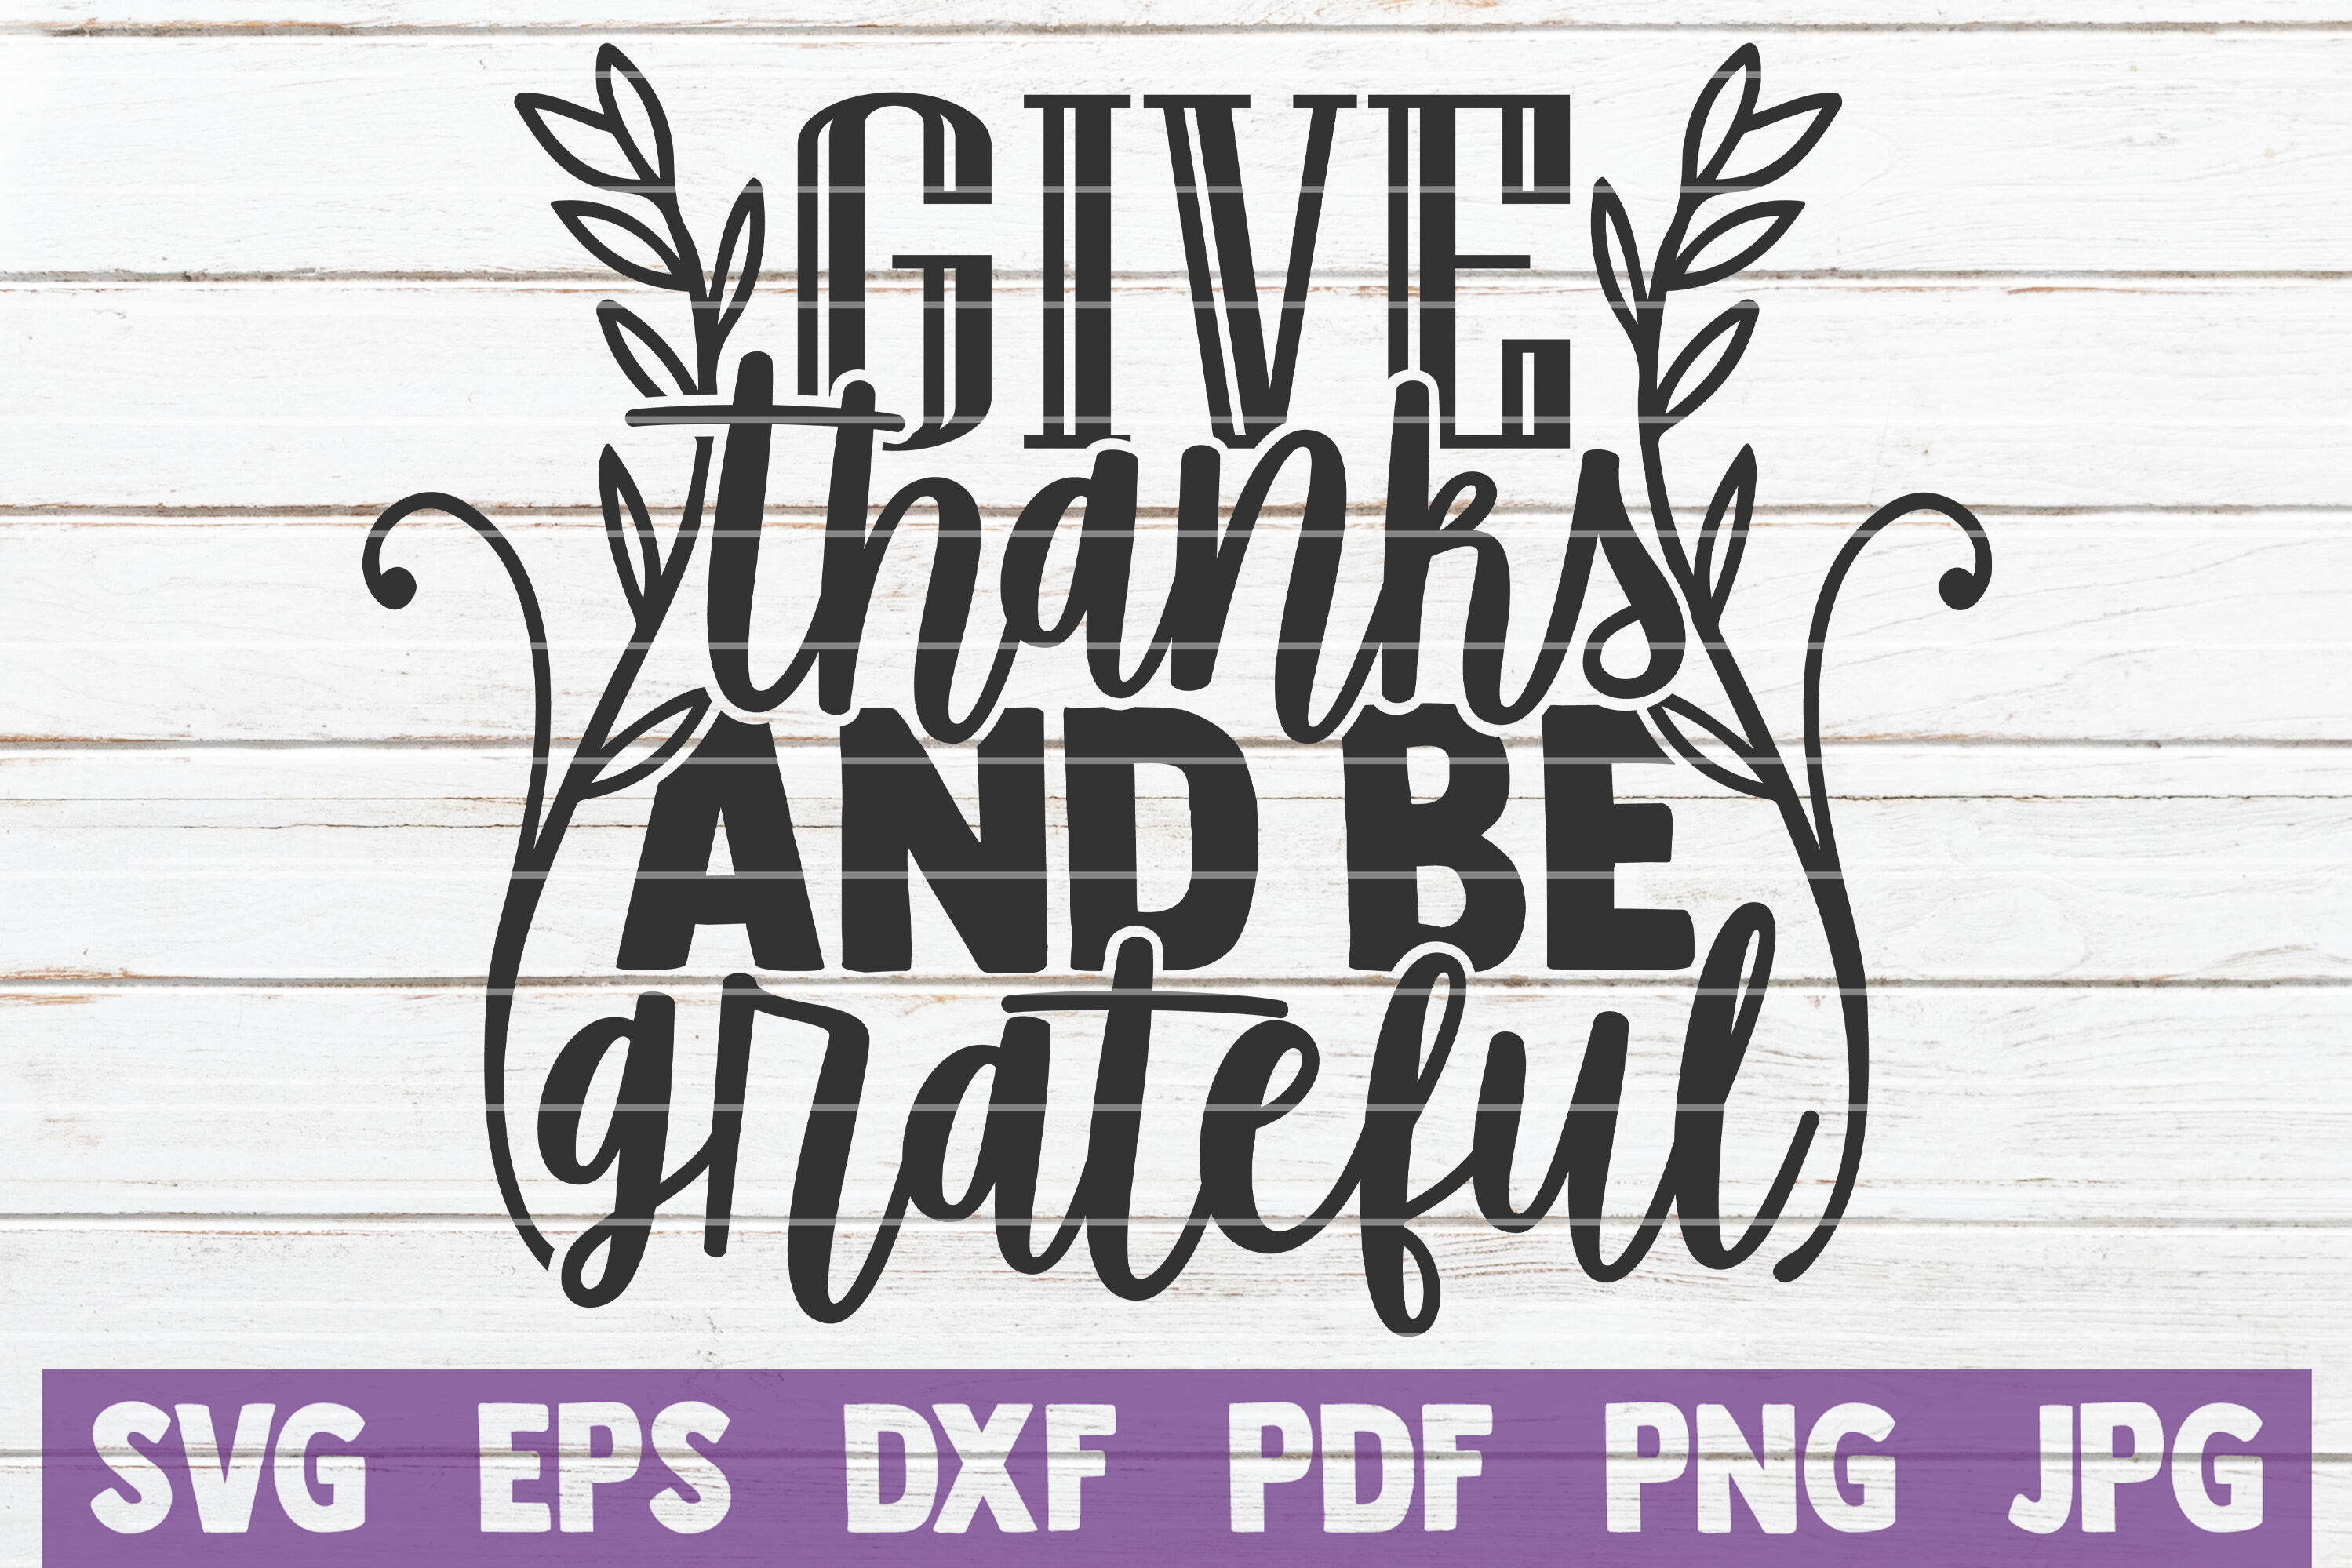 Give Thanks And Be Grateful Svg Cut File By Mintymarshmallows Thehungryjpeg Com